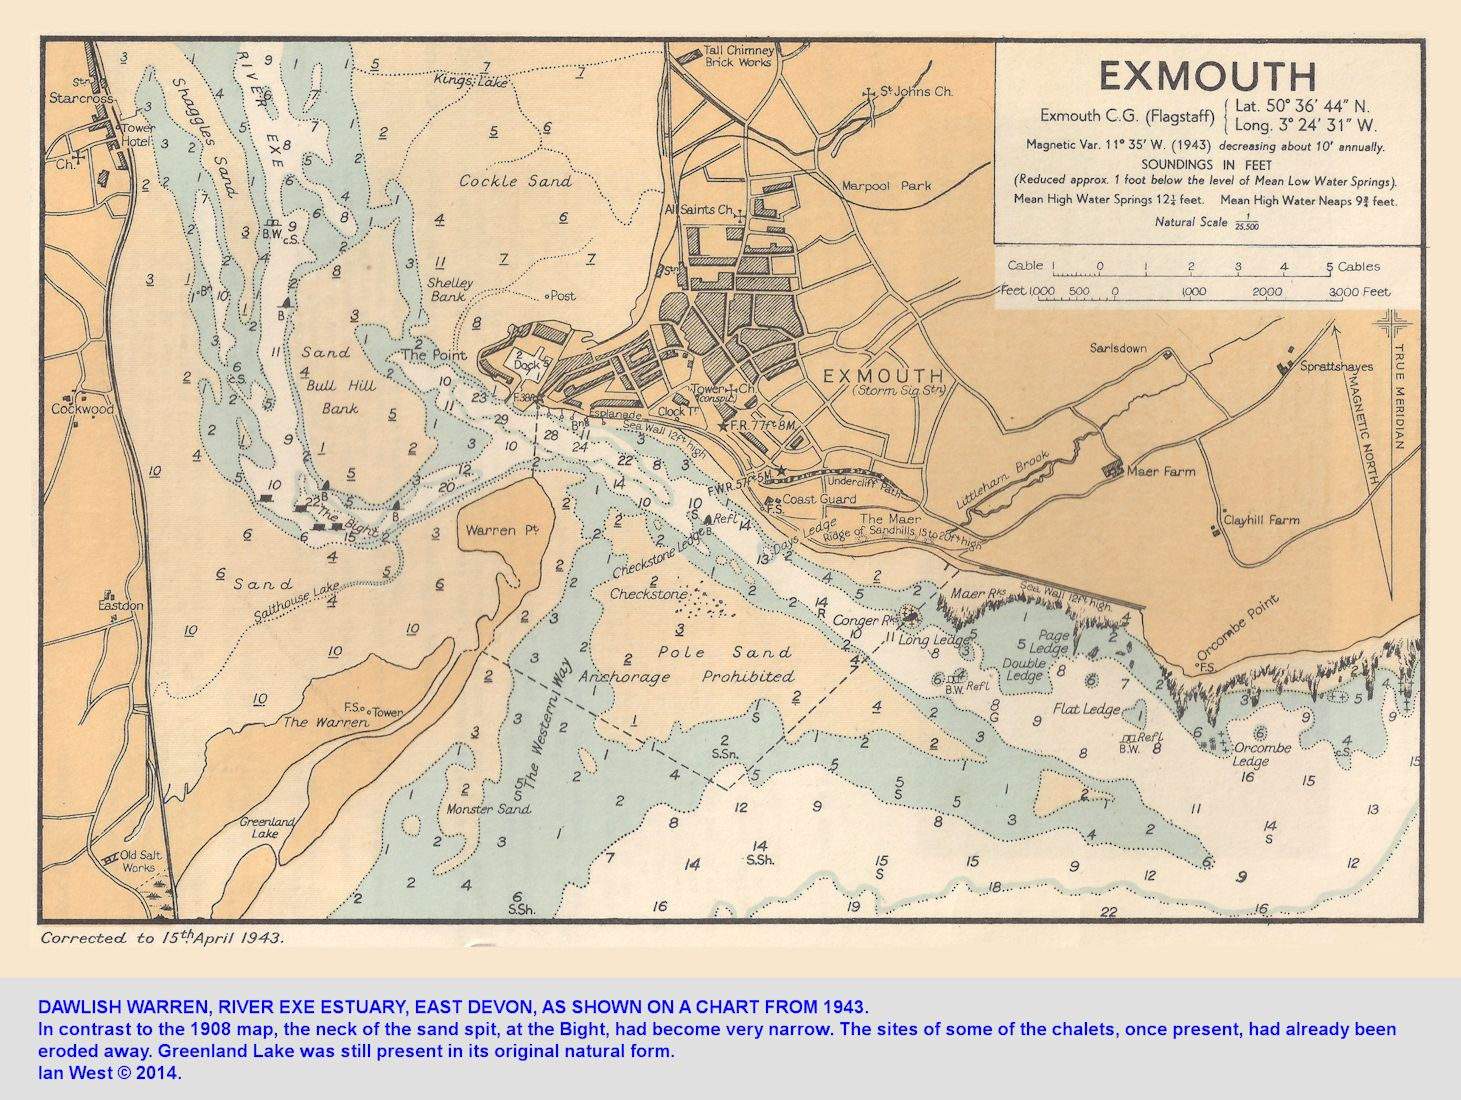 A chart of Dawlish Warren, River Exe Estuary, East Devon as in 1943